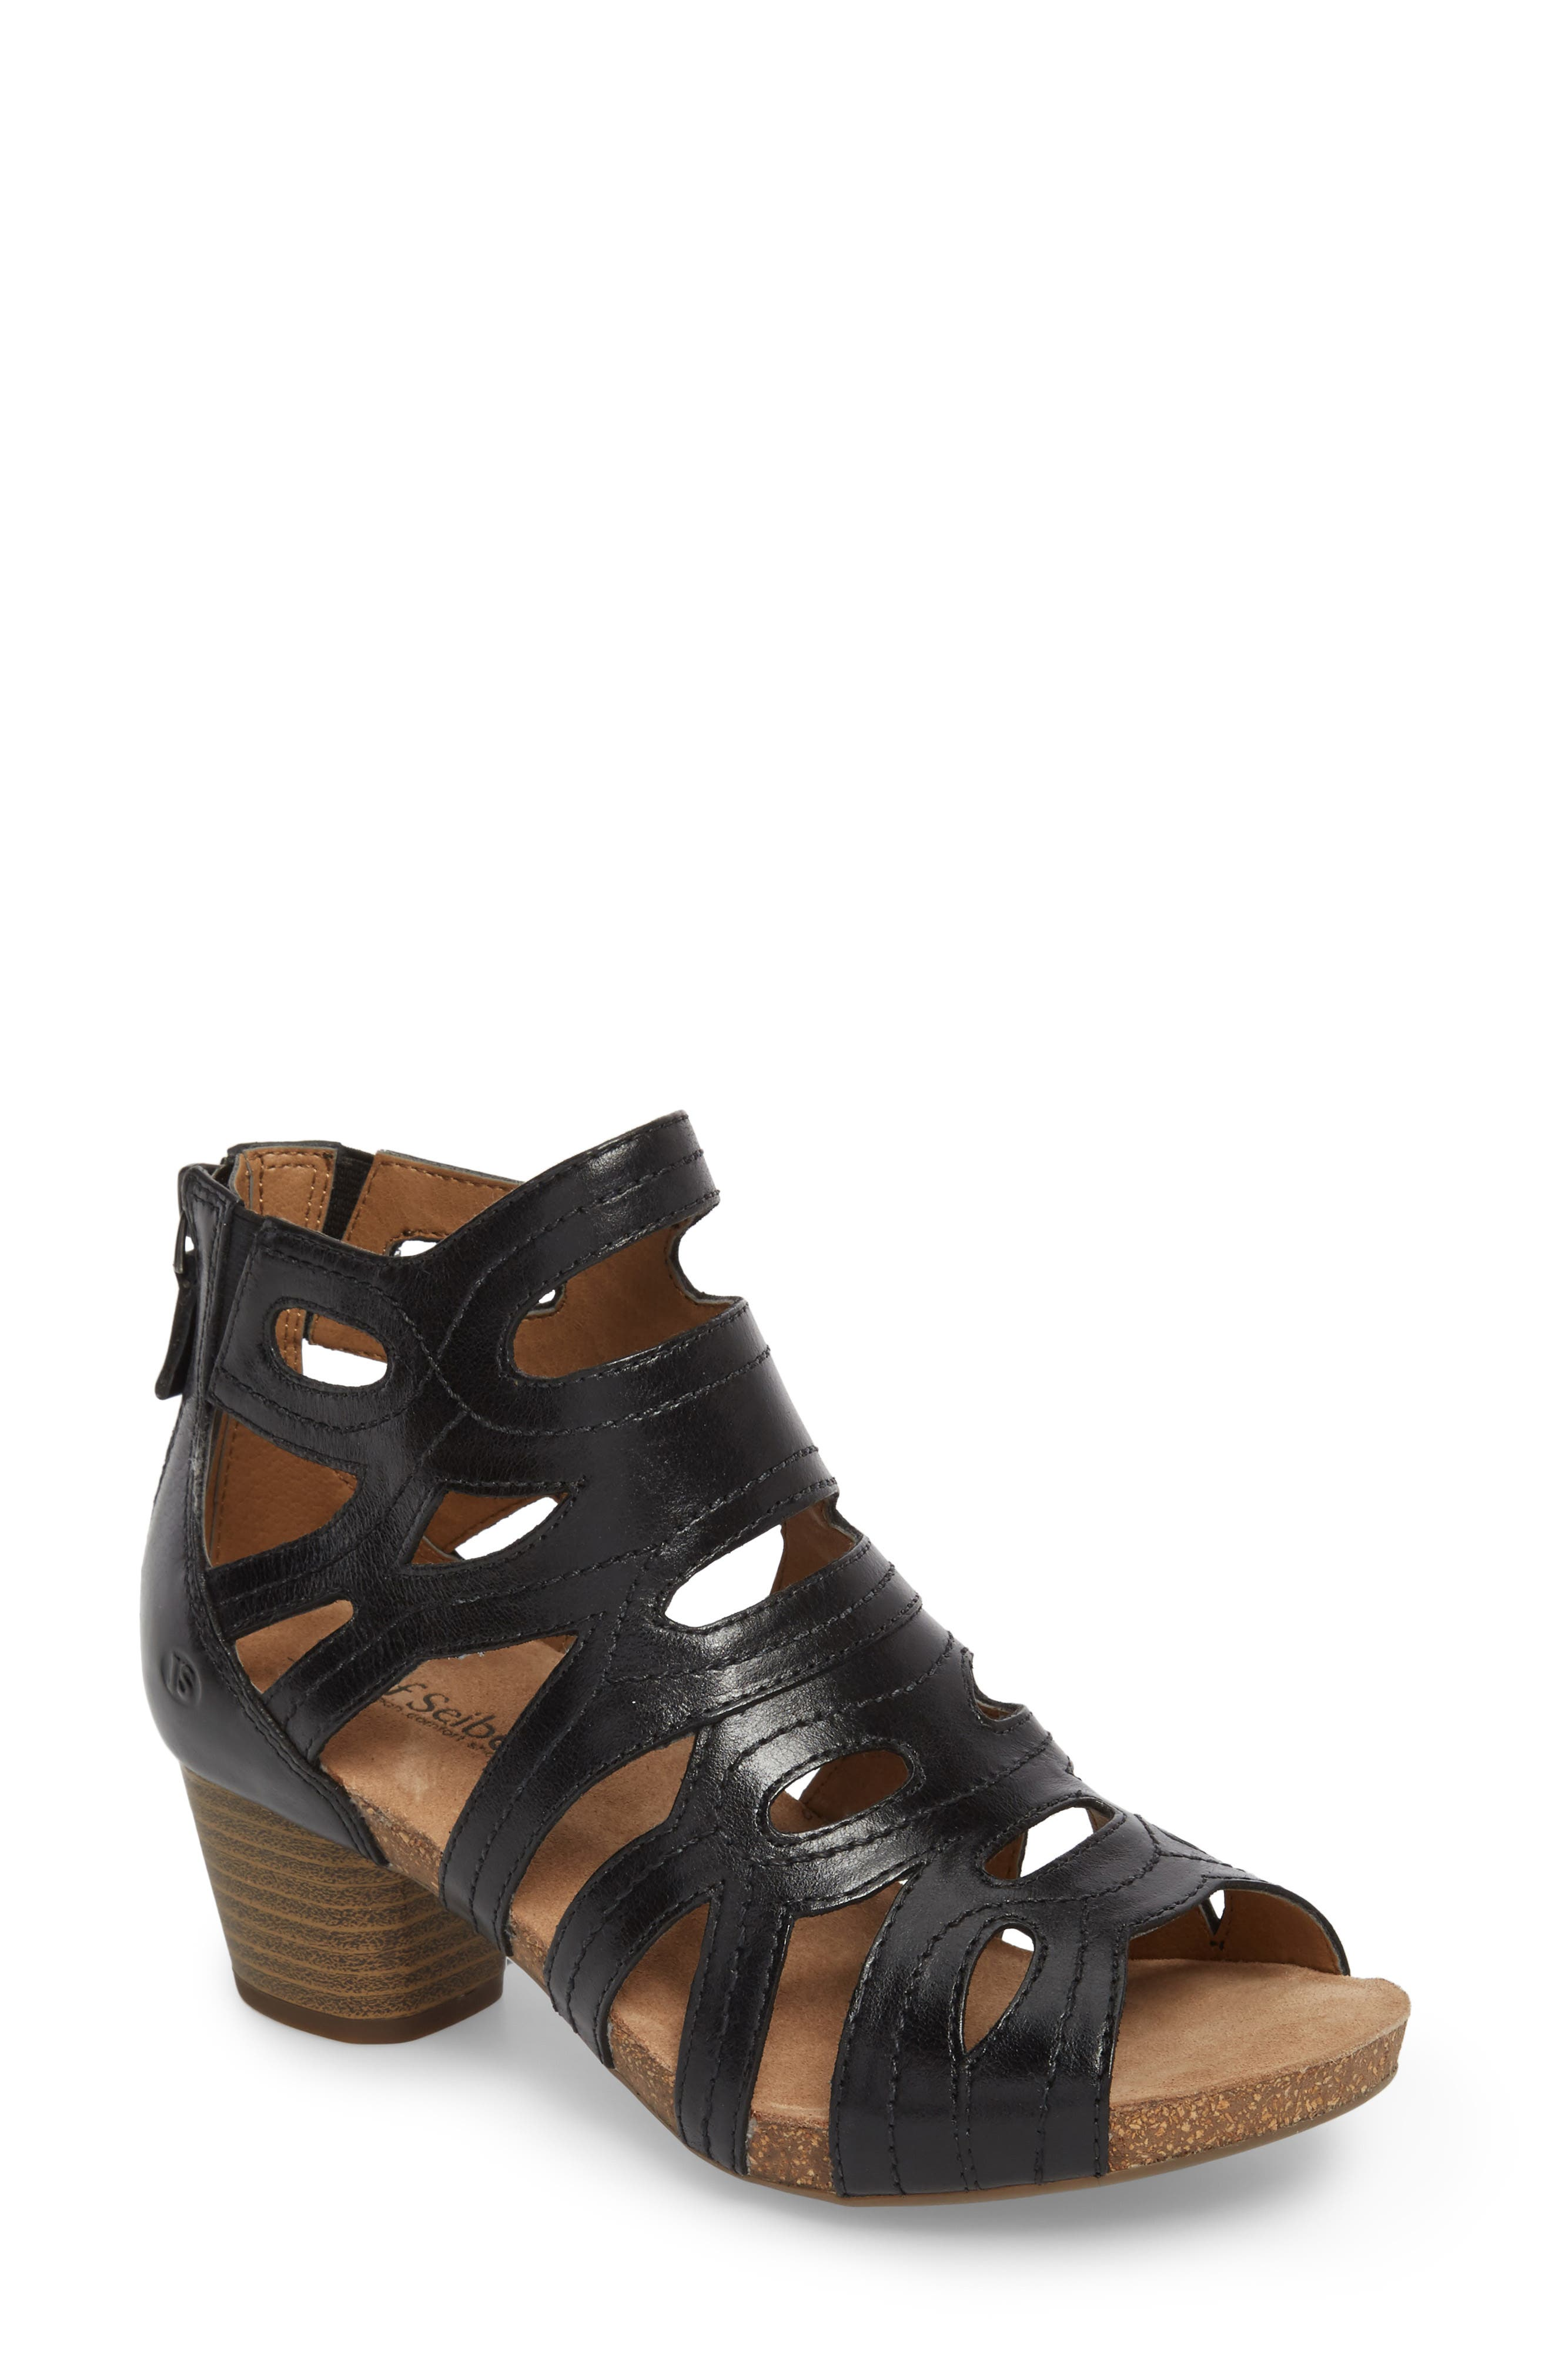 Main Image - Josef Seibel Rose 21 Gladiator Sandal (Women)